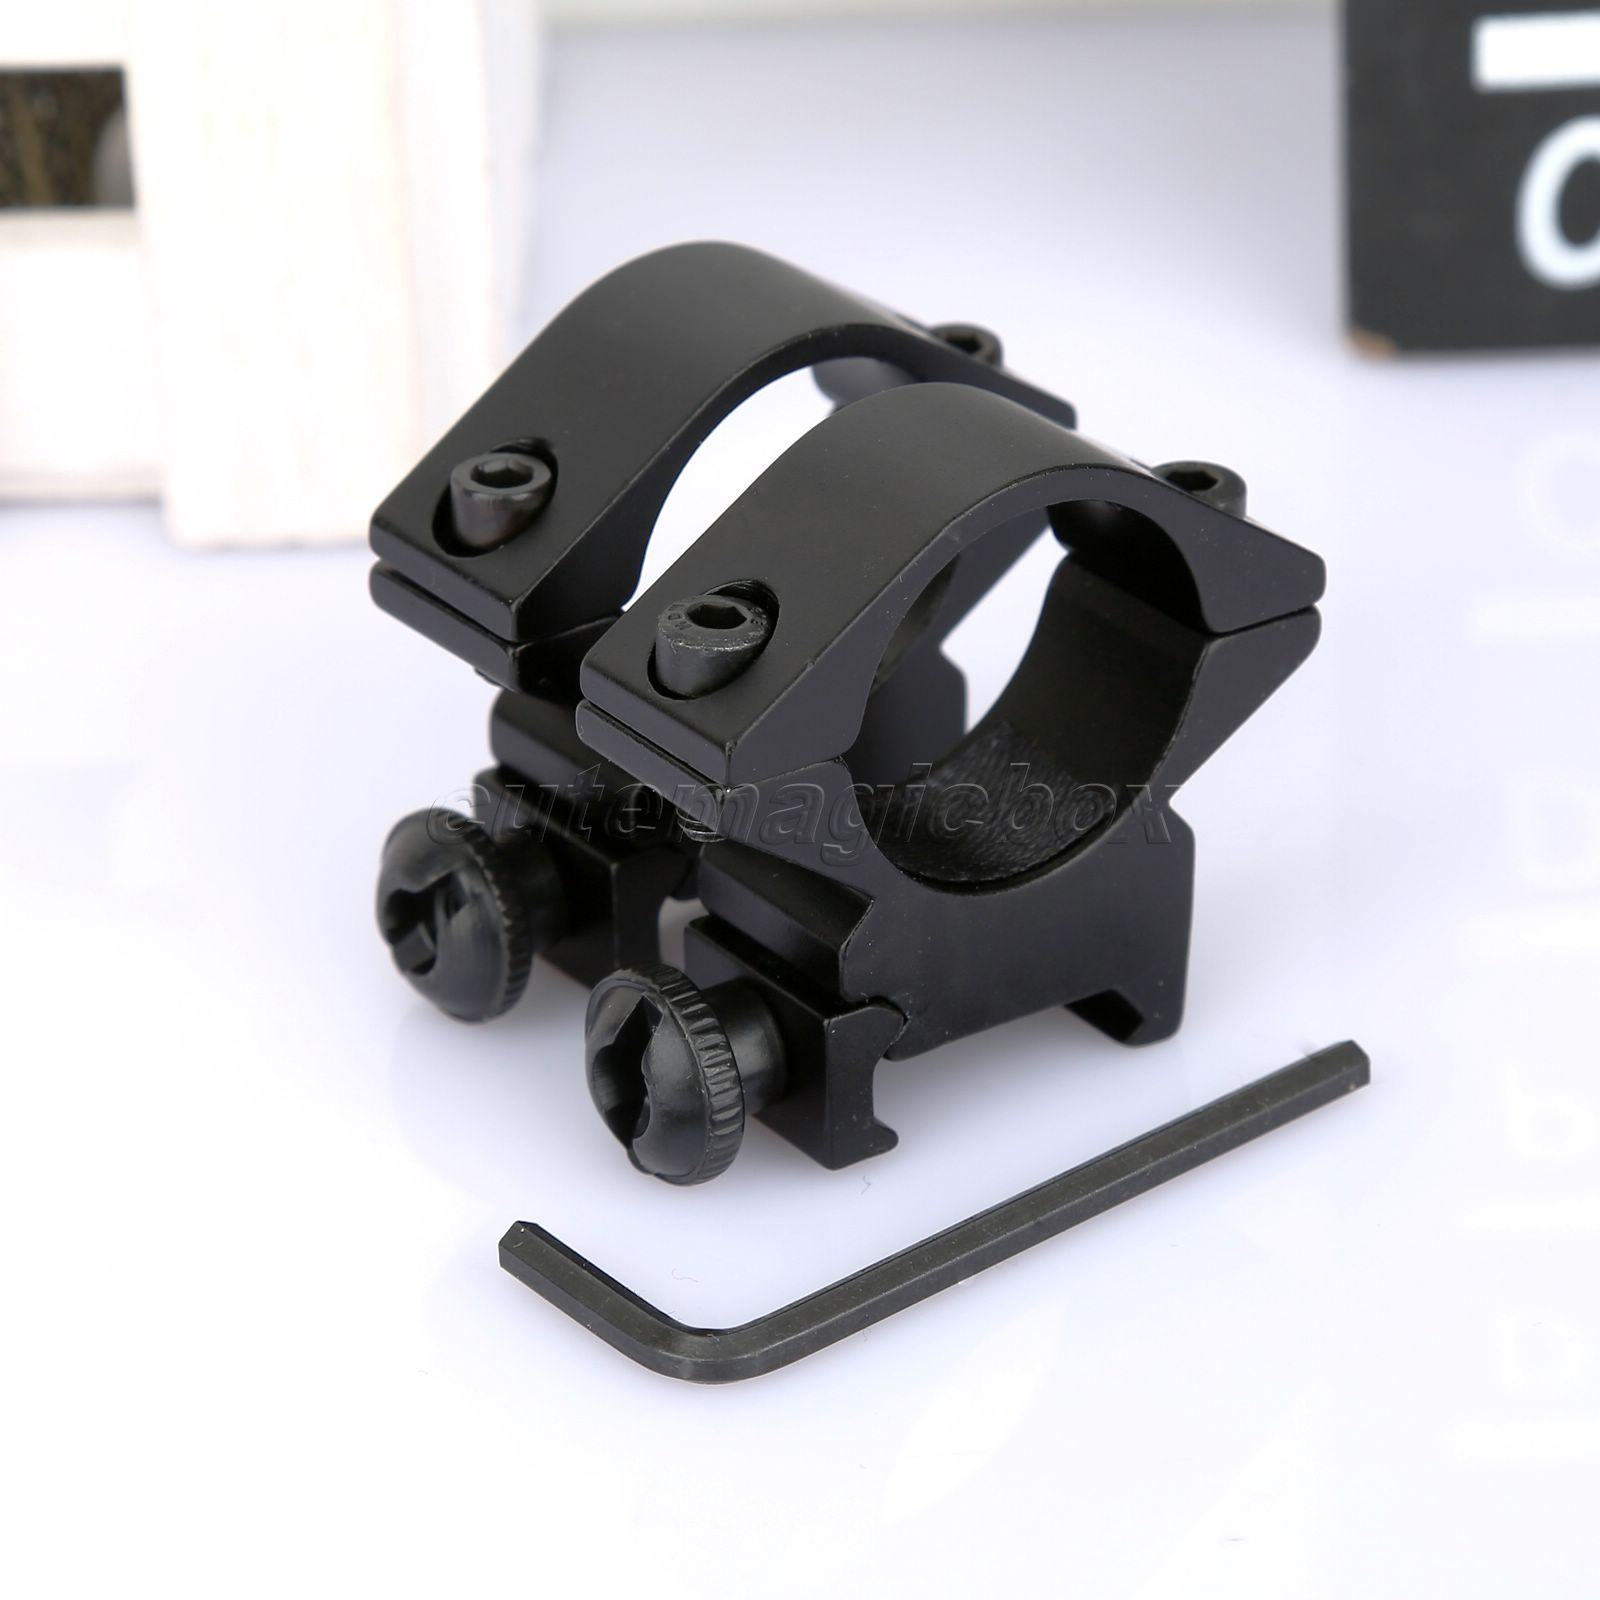 High Quality Aluminum One Pair Tactical Low Profile 25.4mm Scope Rings Barrel fit 20mm Picatinny Weaver Rail Mount Holder 2pcs(China (Mainland))